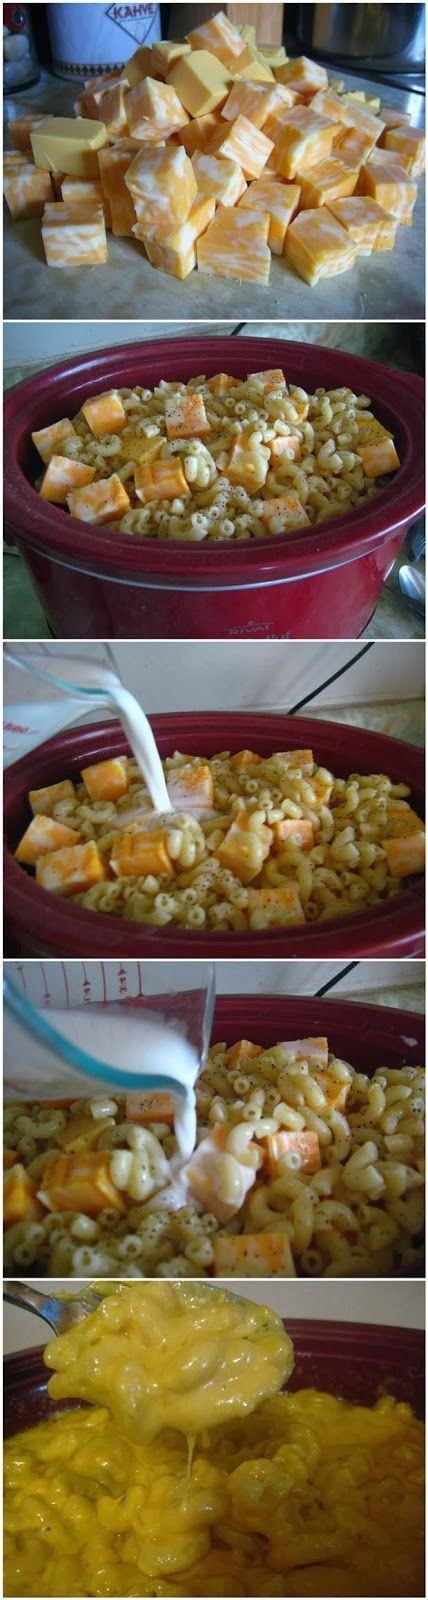 Crock Pot Mac Cheese. Easy to make this gluten free! just use gluten free macaroni noodles